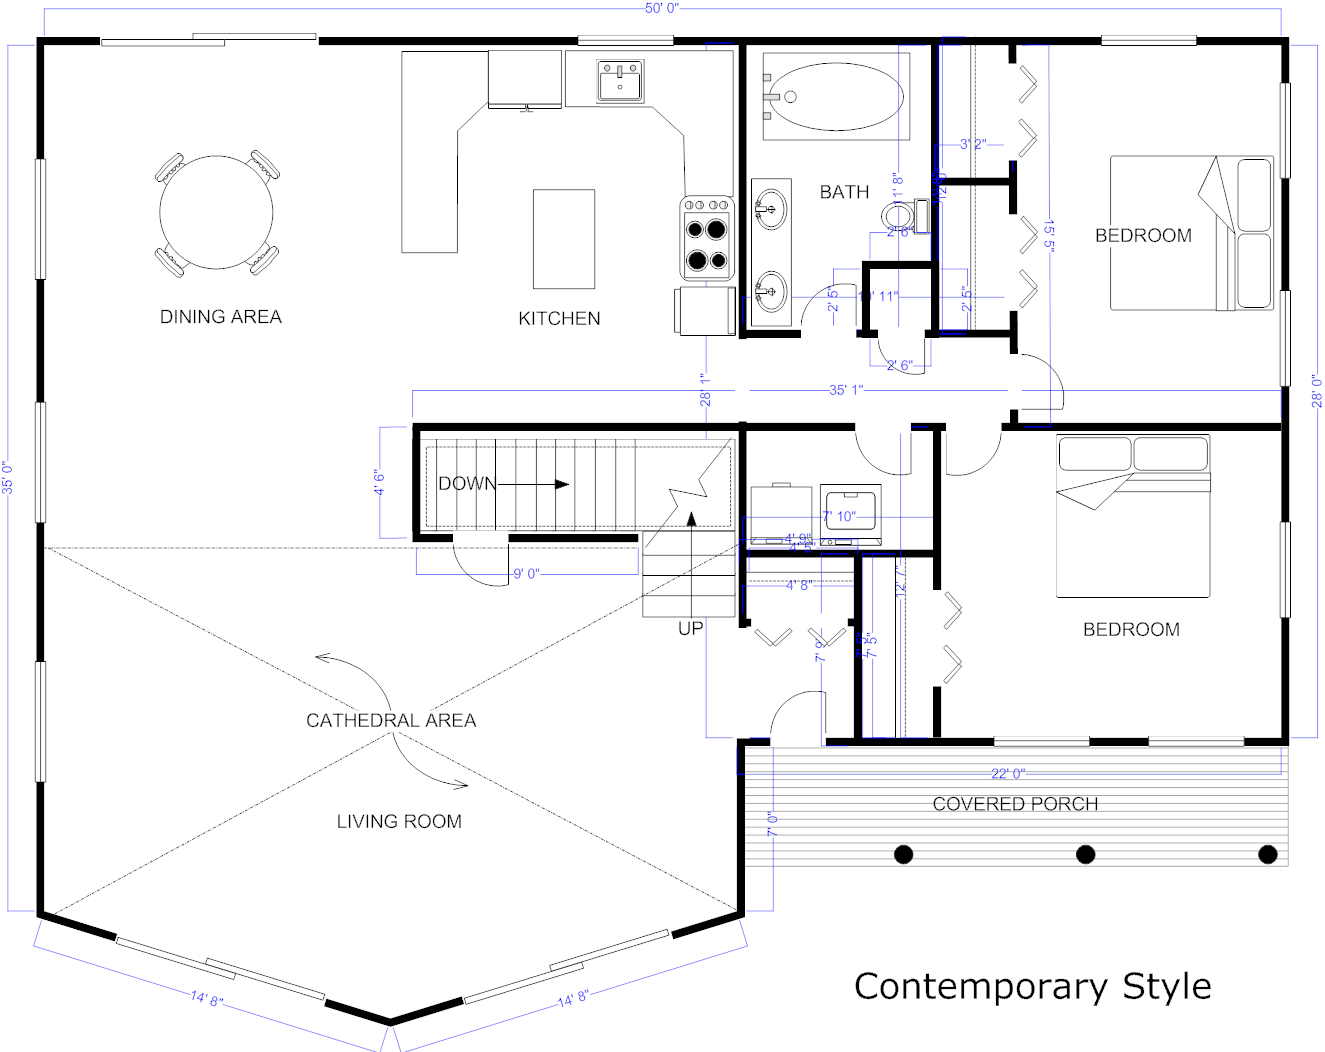 Blank house floor plan template meze blog Blueprints maker online free